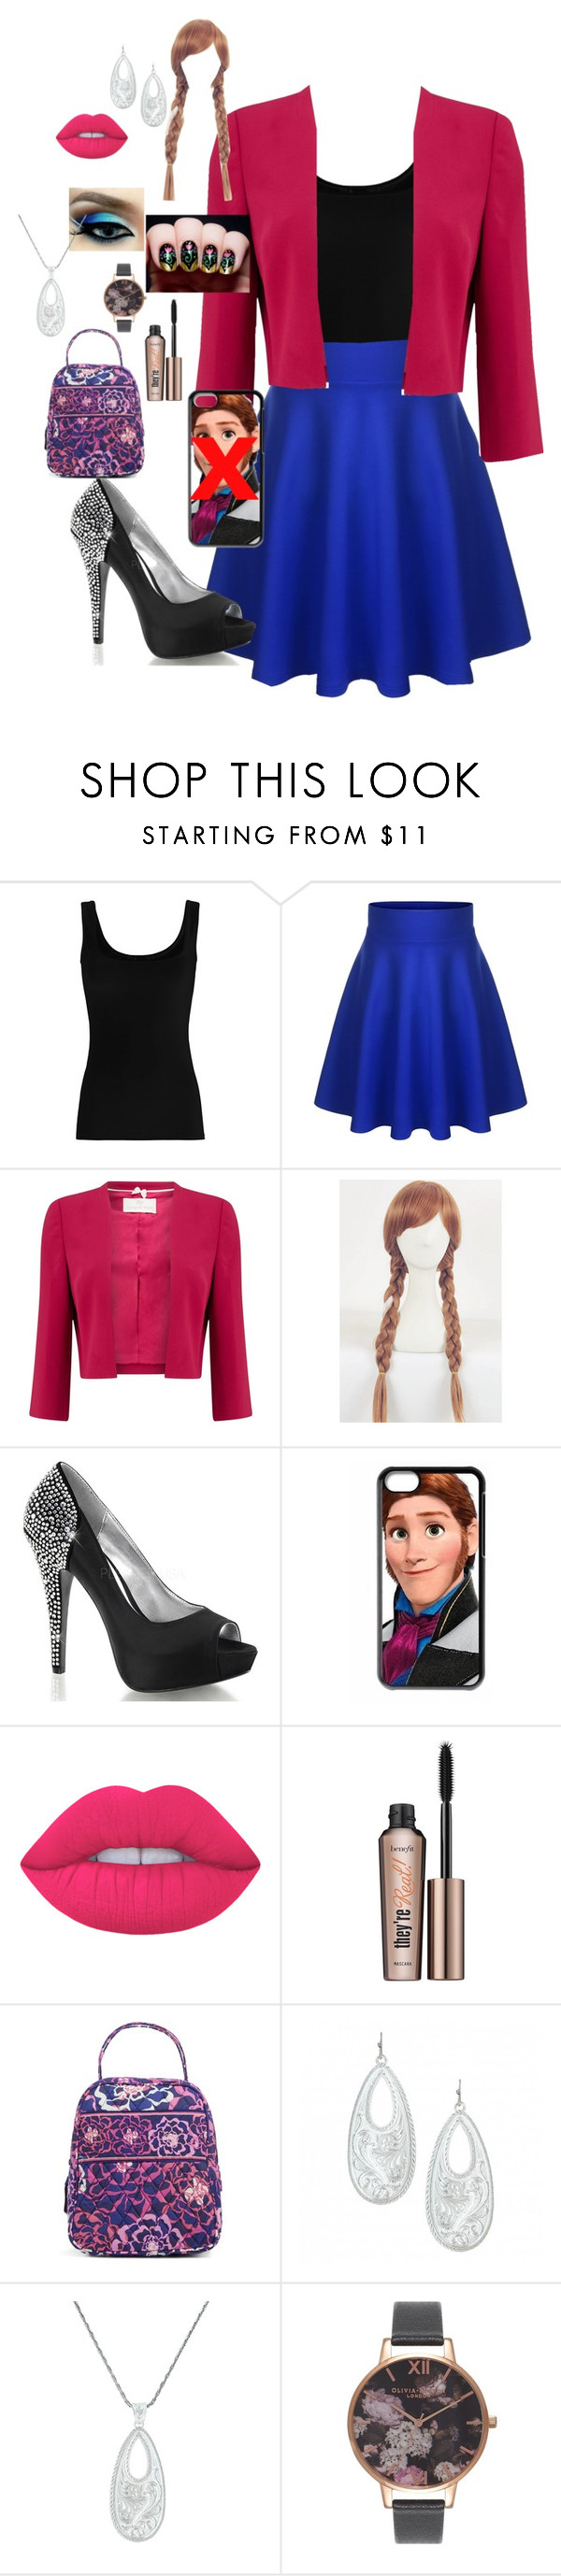 """""""Anna"""" by crazedfangirl ❤ liked on Polyvore featuring Twenty, Jacques Vert, Disney, Lime Crime, Benefit, Vera Bradley and Olivia Burton"""